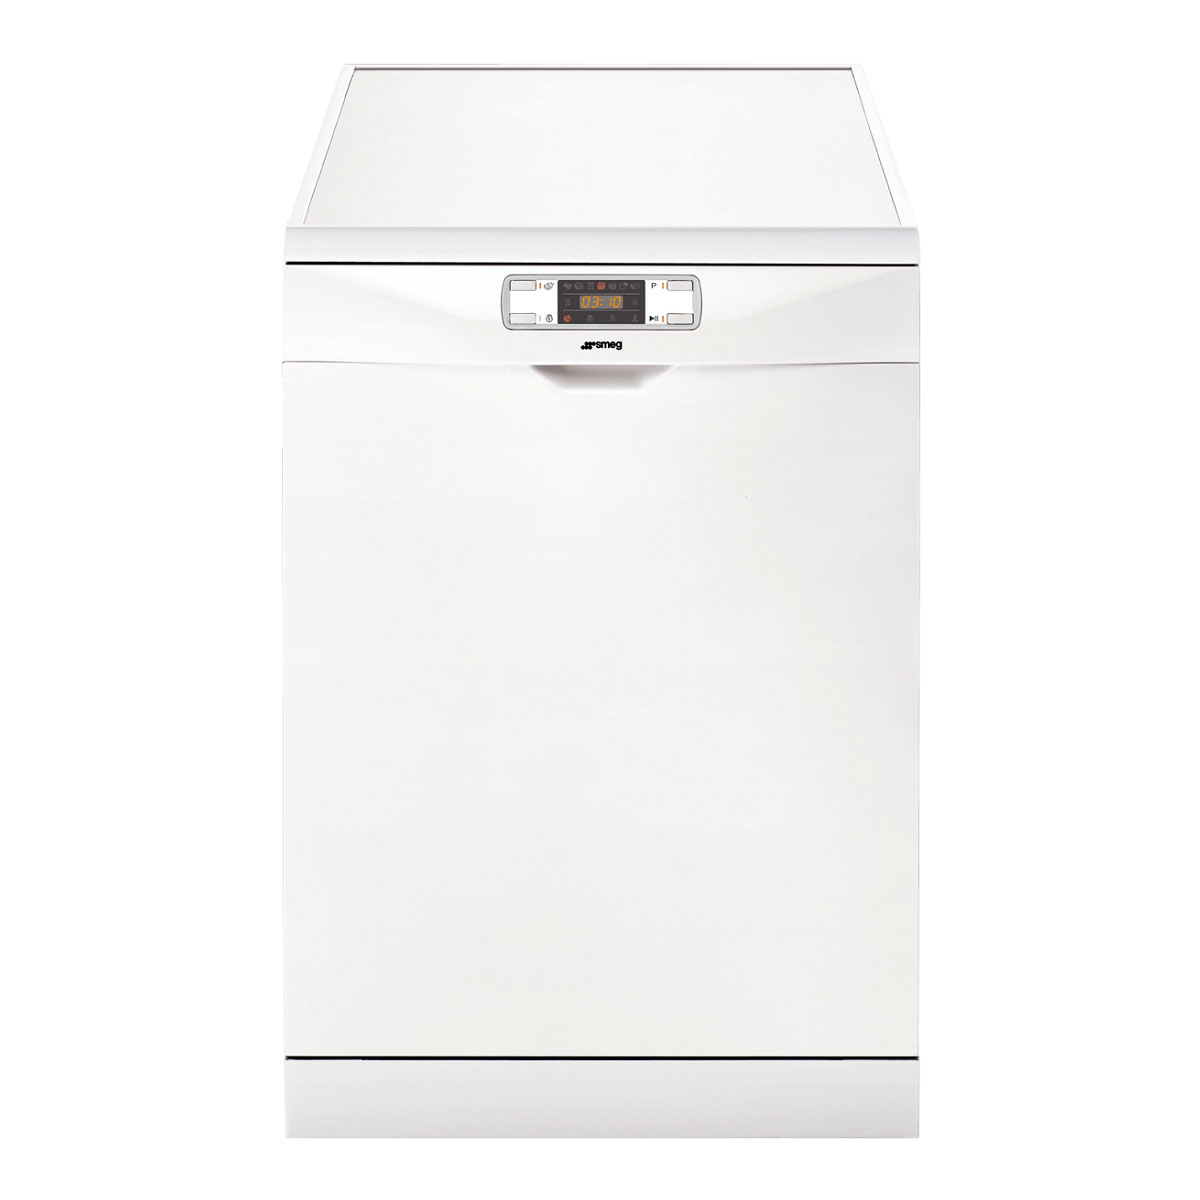 Smeg DWA314W 60cm Freestanding Dishwasher White